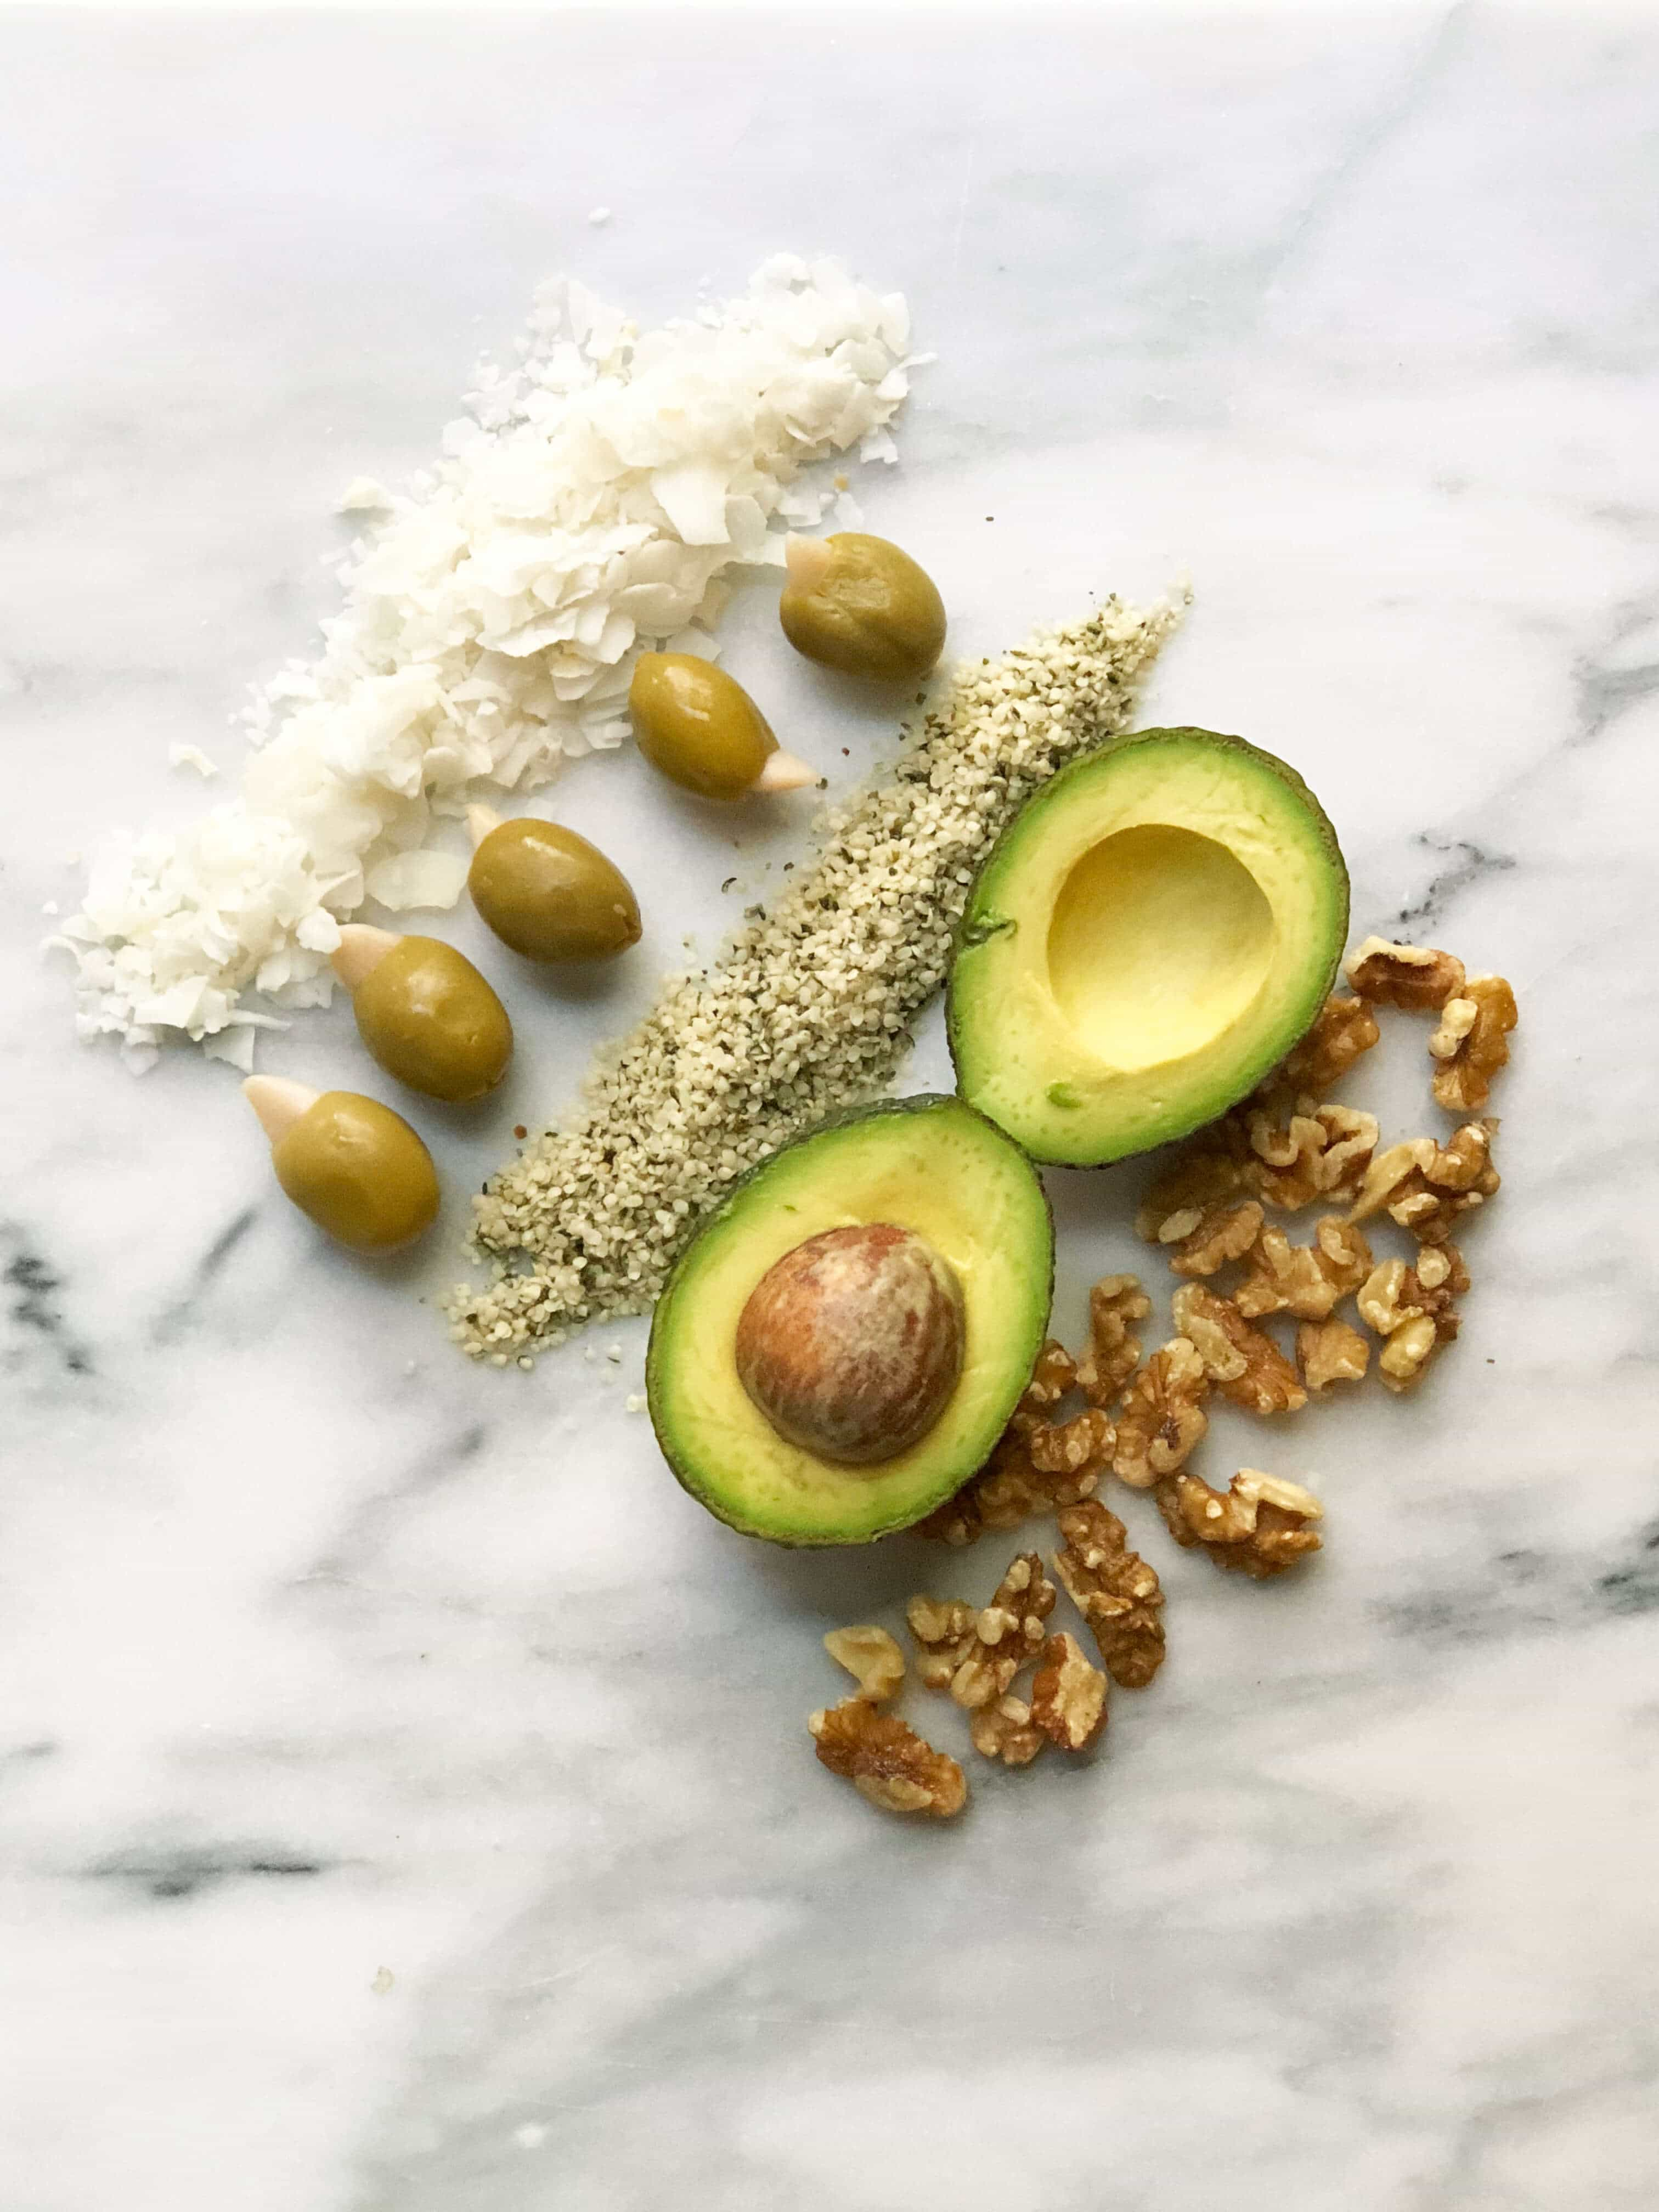 Why You Should'nt Be Afraid Of Healthy Fats #saveeandsavory #weightlosstips #wellness #getfit #fitgirls #healthylifestyle #healthyfat